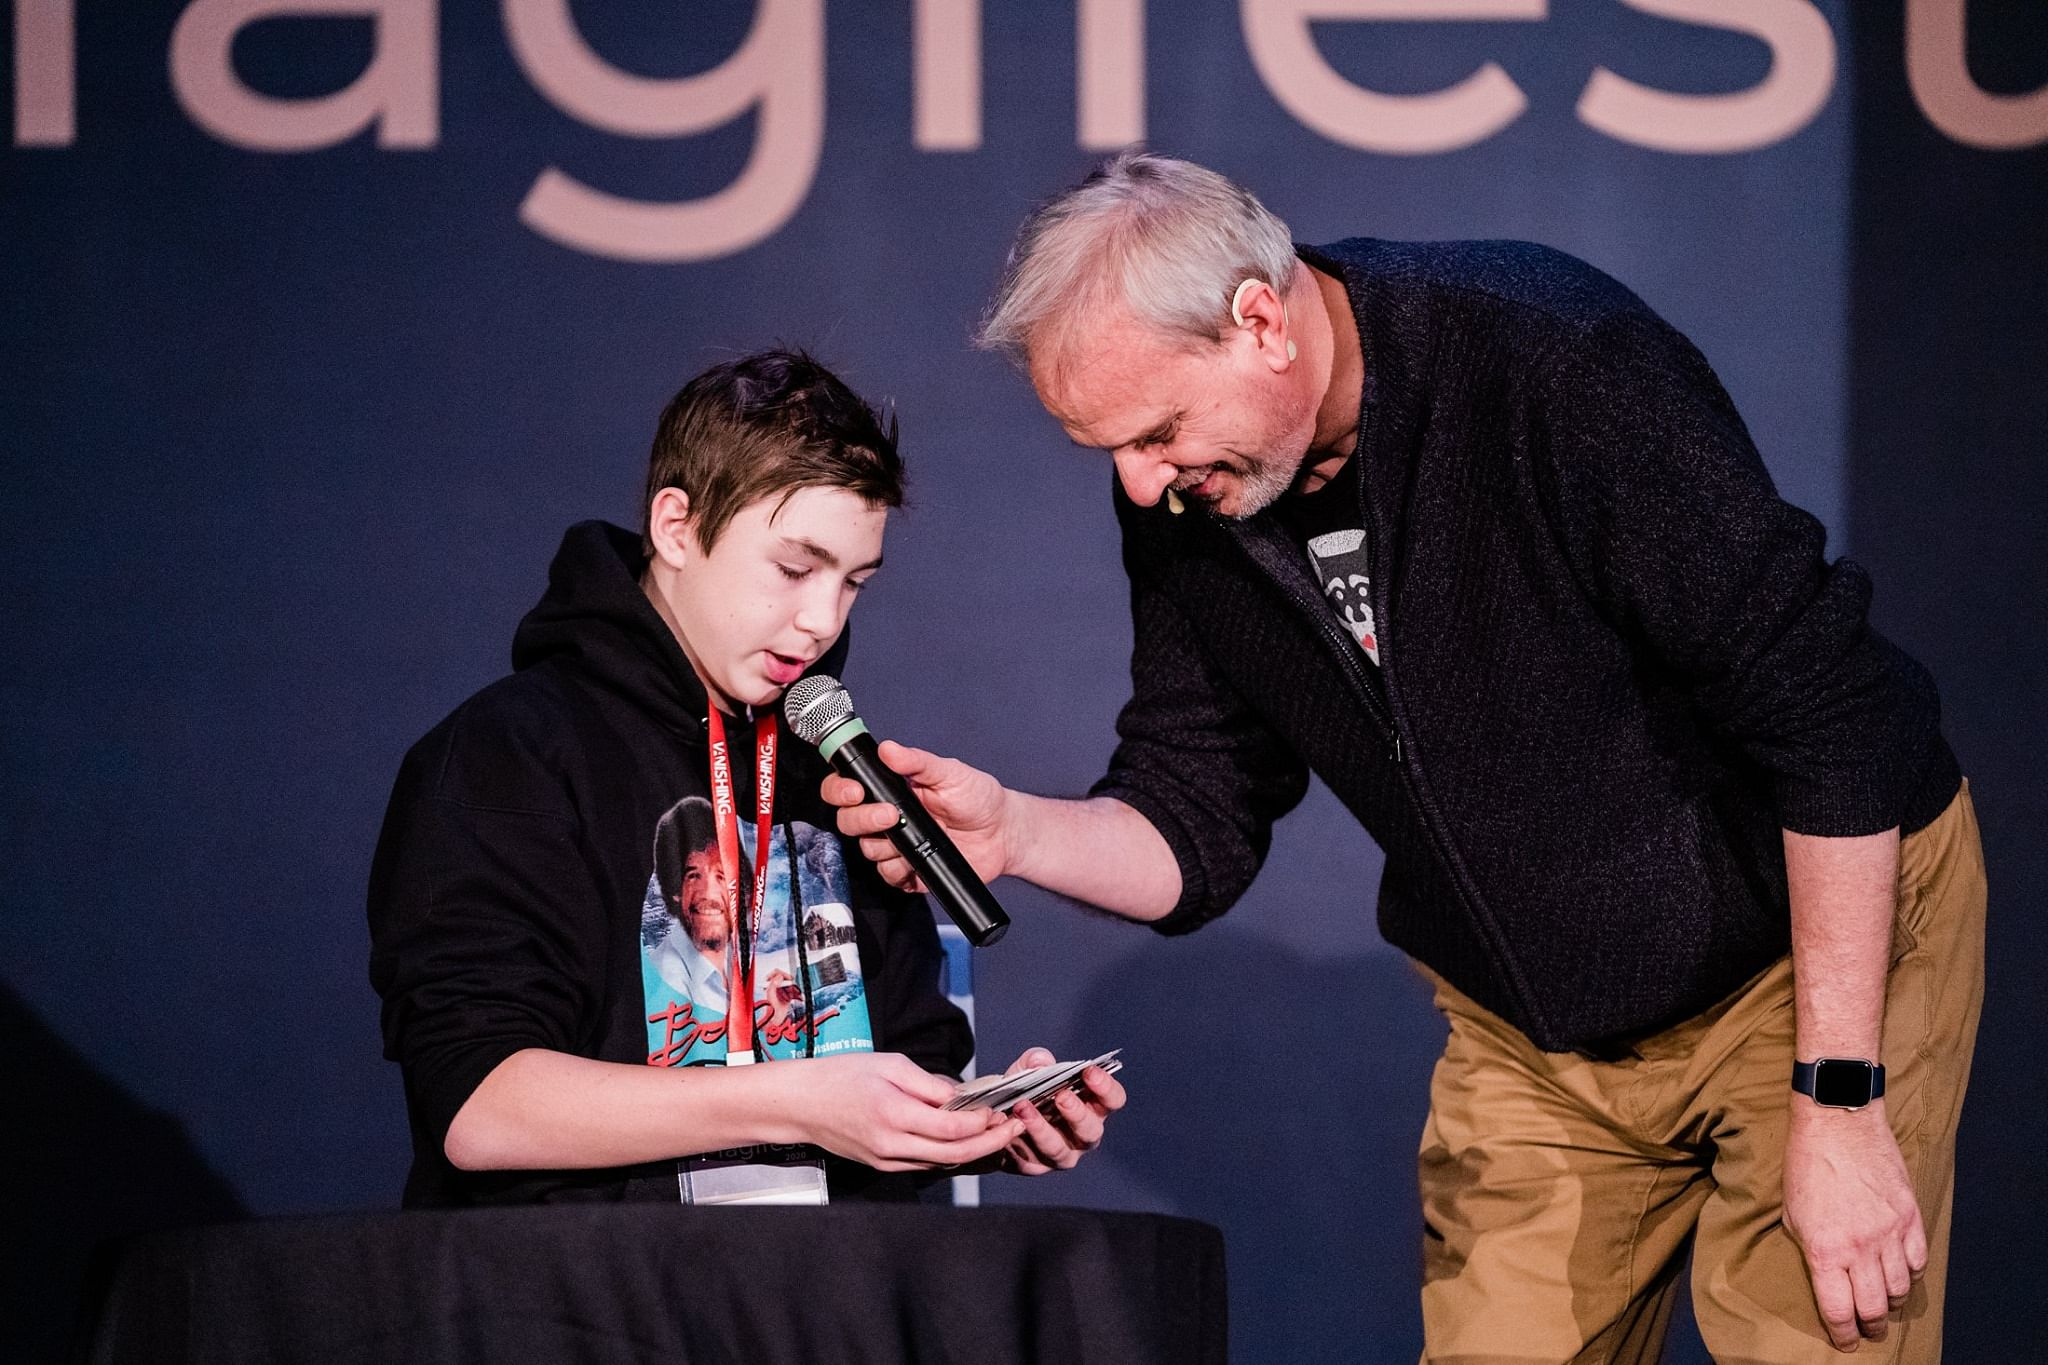 A young magician performs a card trick for magician David Williamson at the Magifest Magic Convention